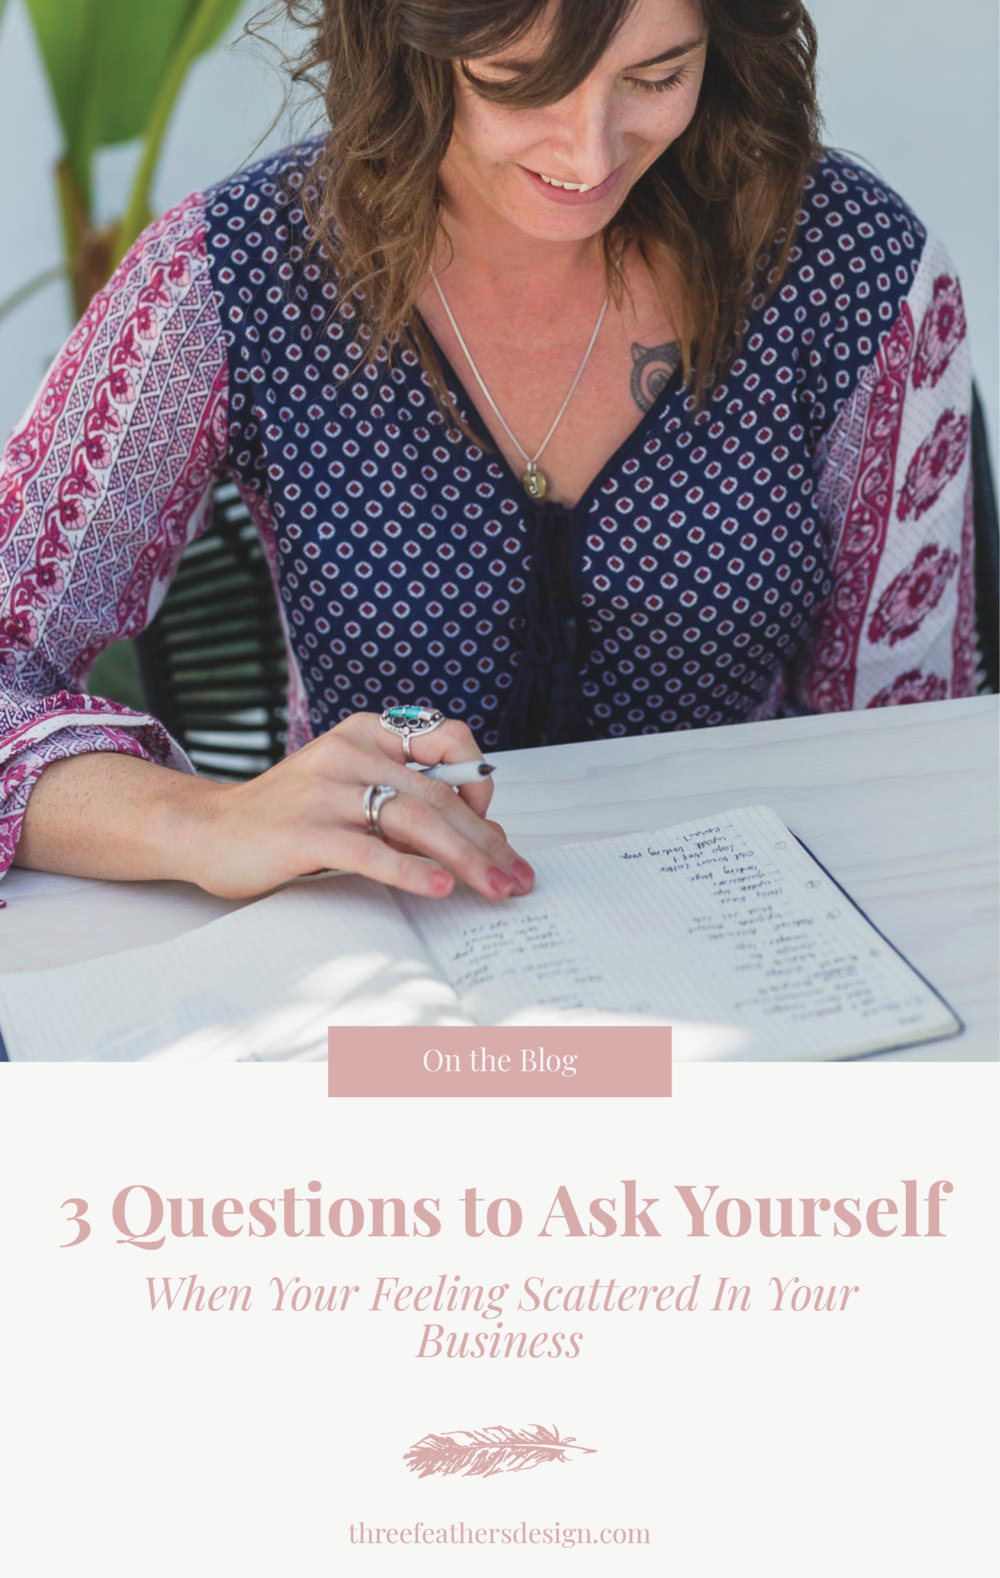 3 Questions to Ask Yourself When Your Feeling Scattered In Your Business | Three Feathers Design | threefeathersdesign.com